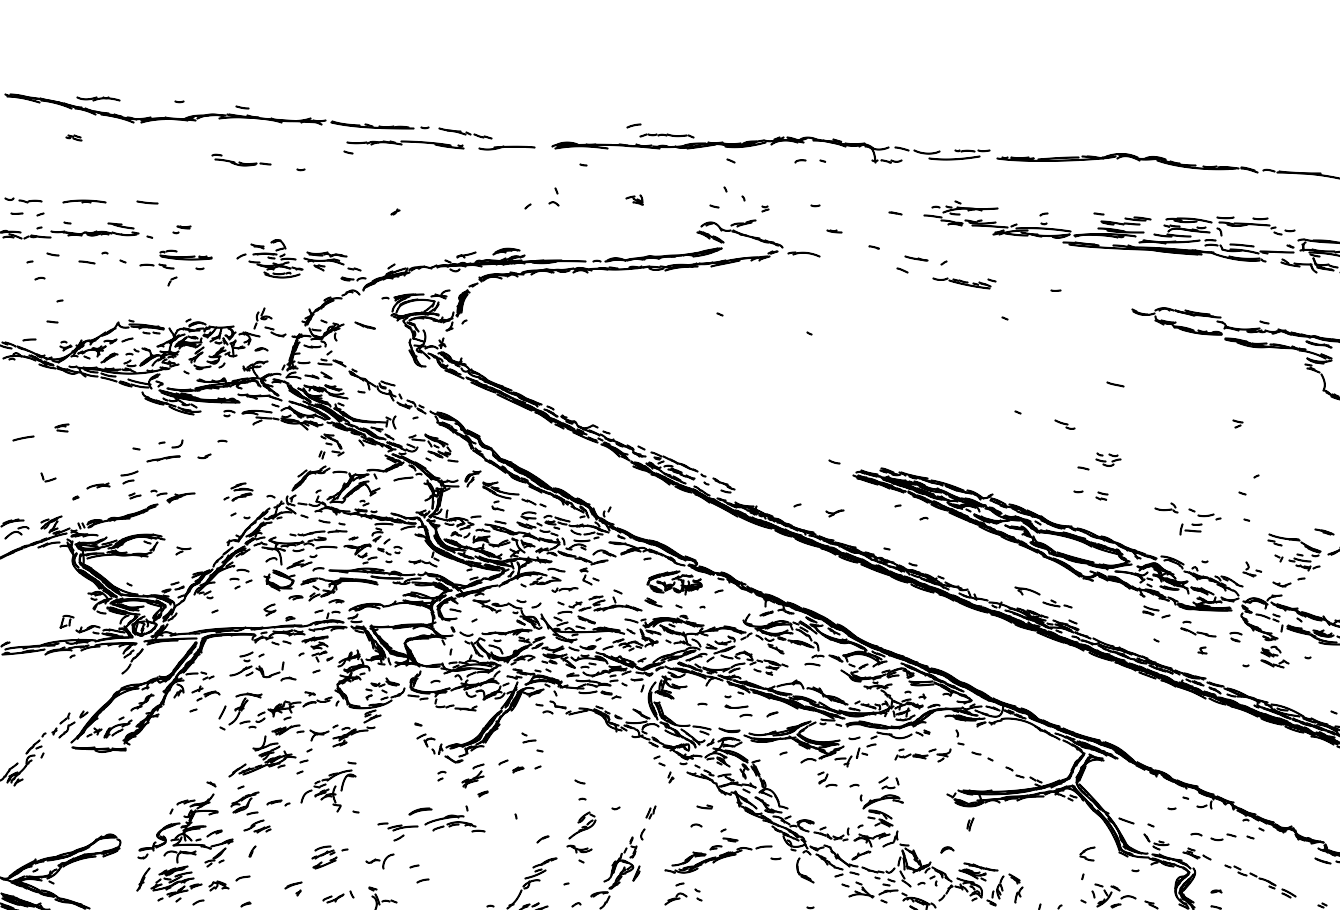 Terrain Signature of the Hanford Reservation in Eastern Washington